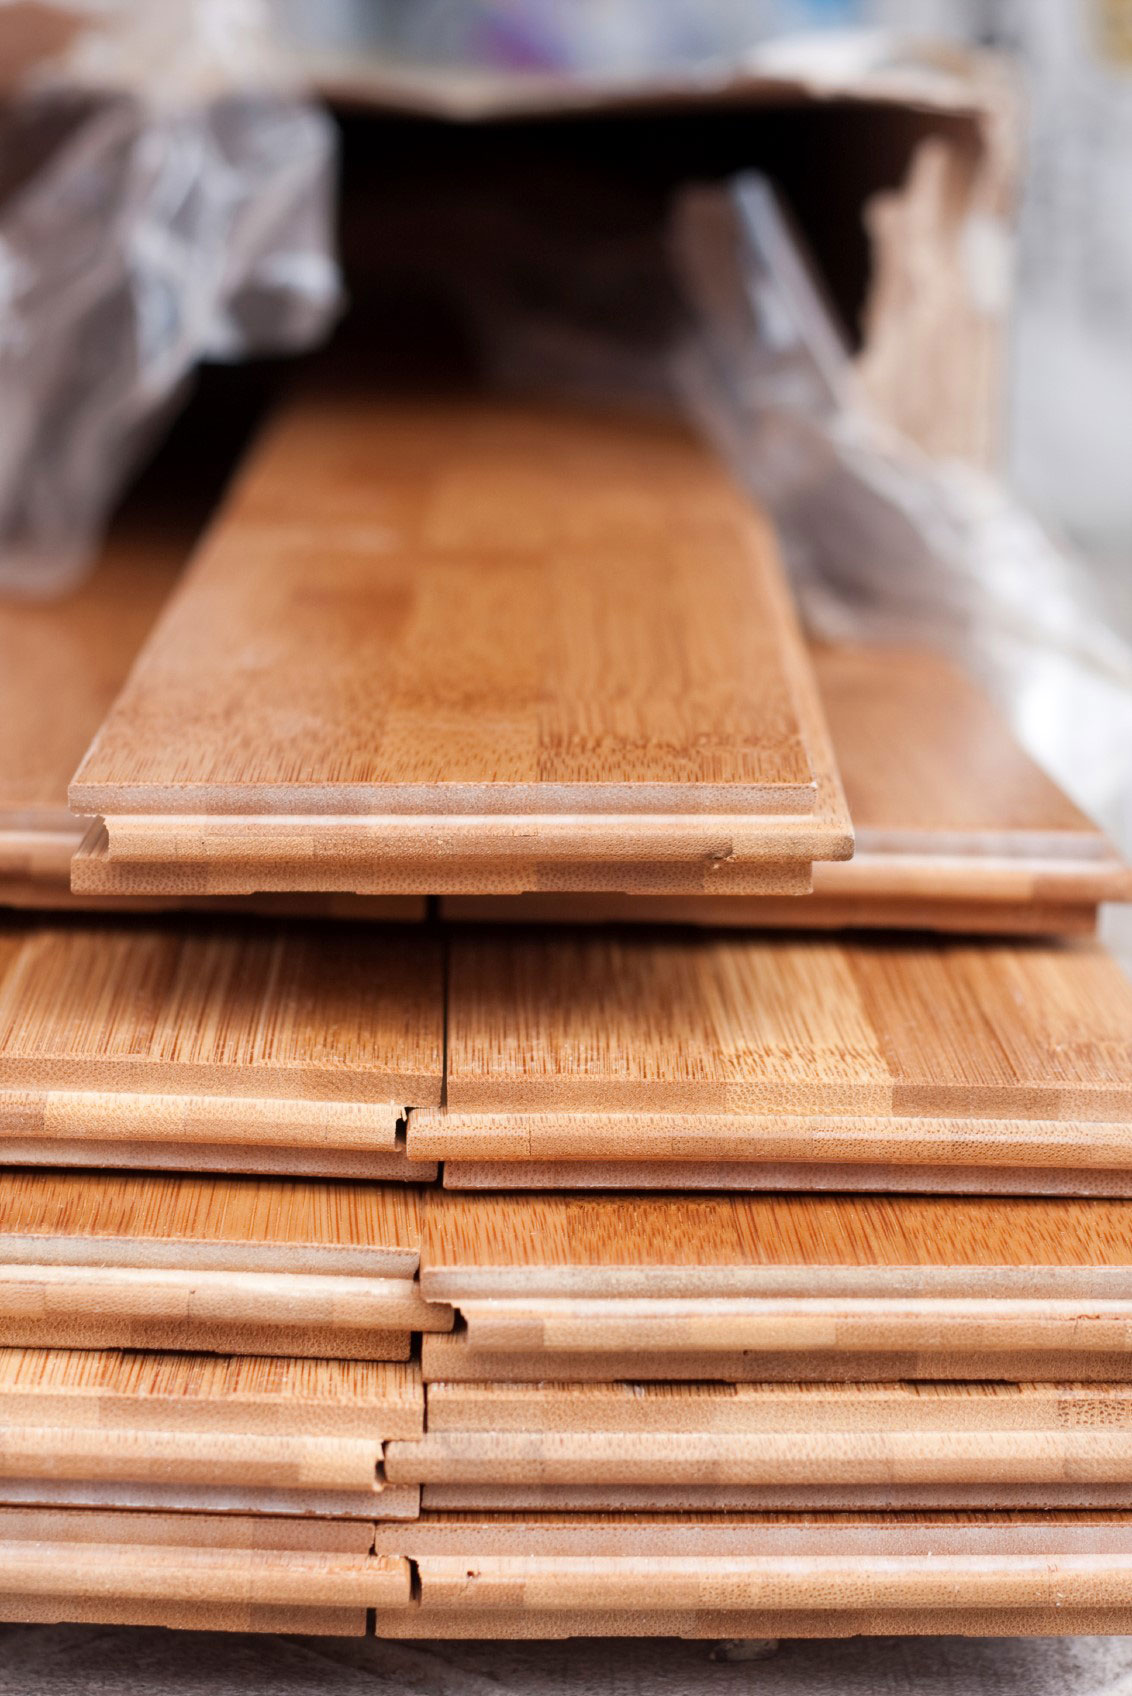 Okanagan Hardwood Flooring And Tile Company Provide The Valley With Best Selection Of Products Finishing Supplies